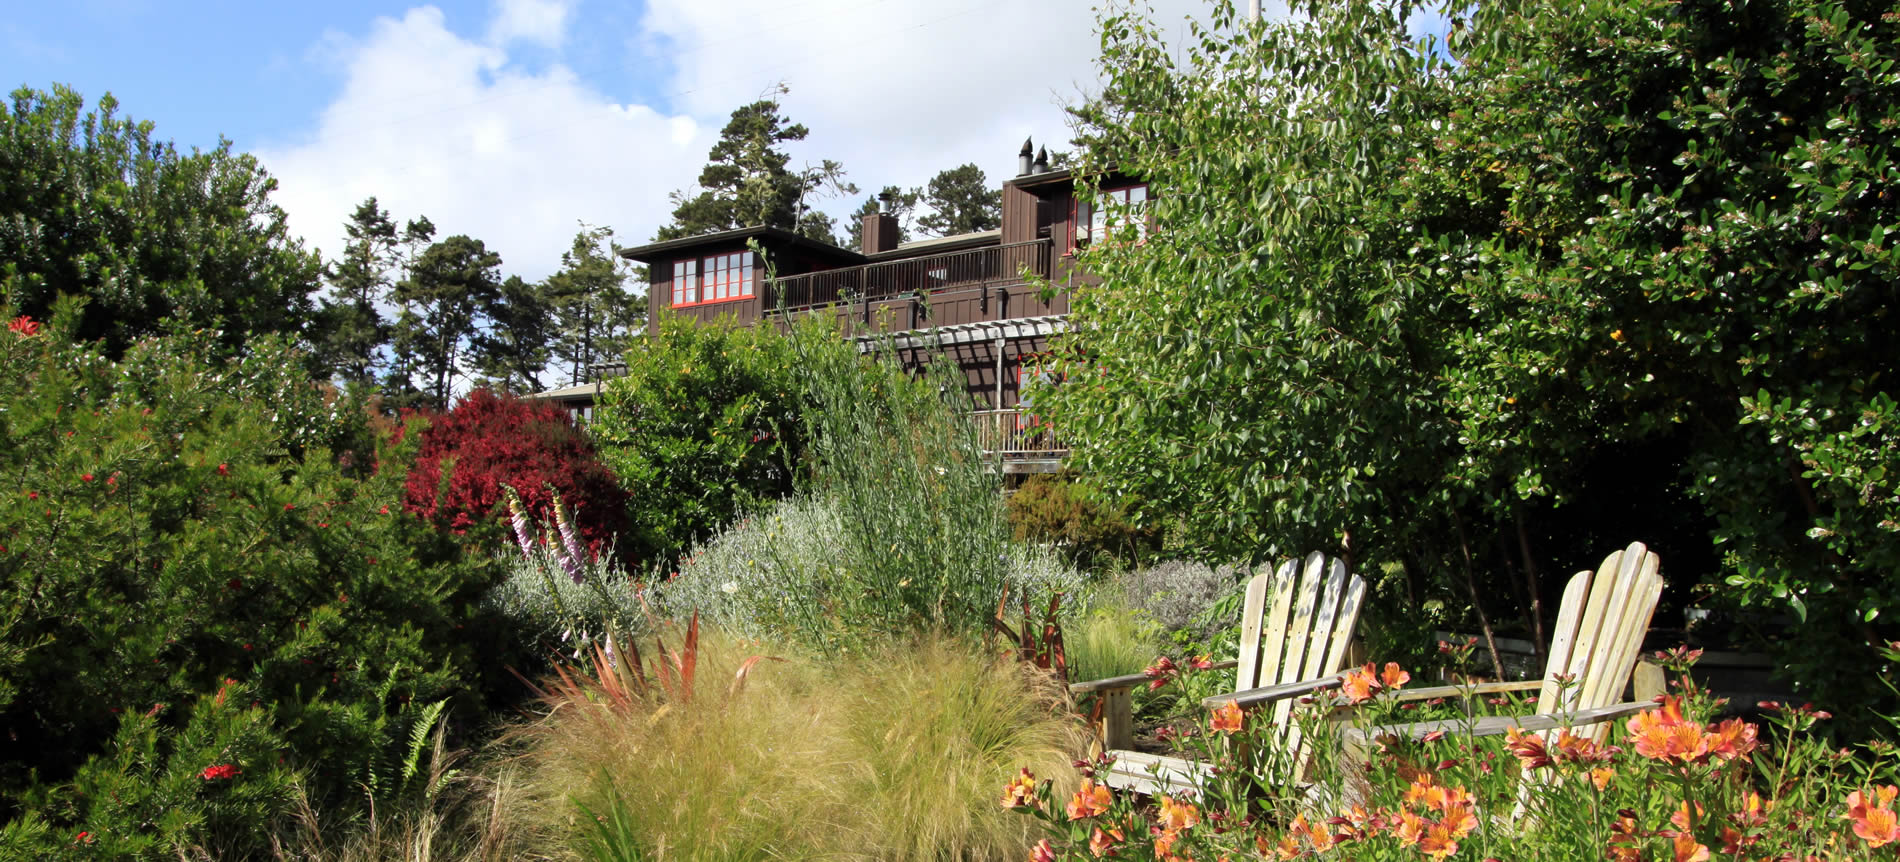 mendocino lodging at stanford inn - gardens with main building